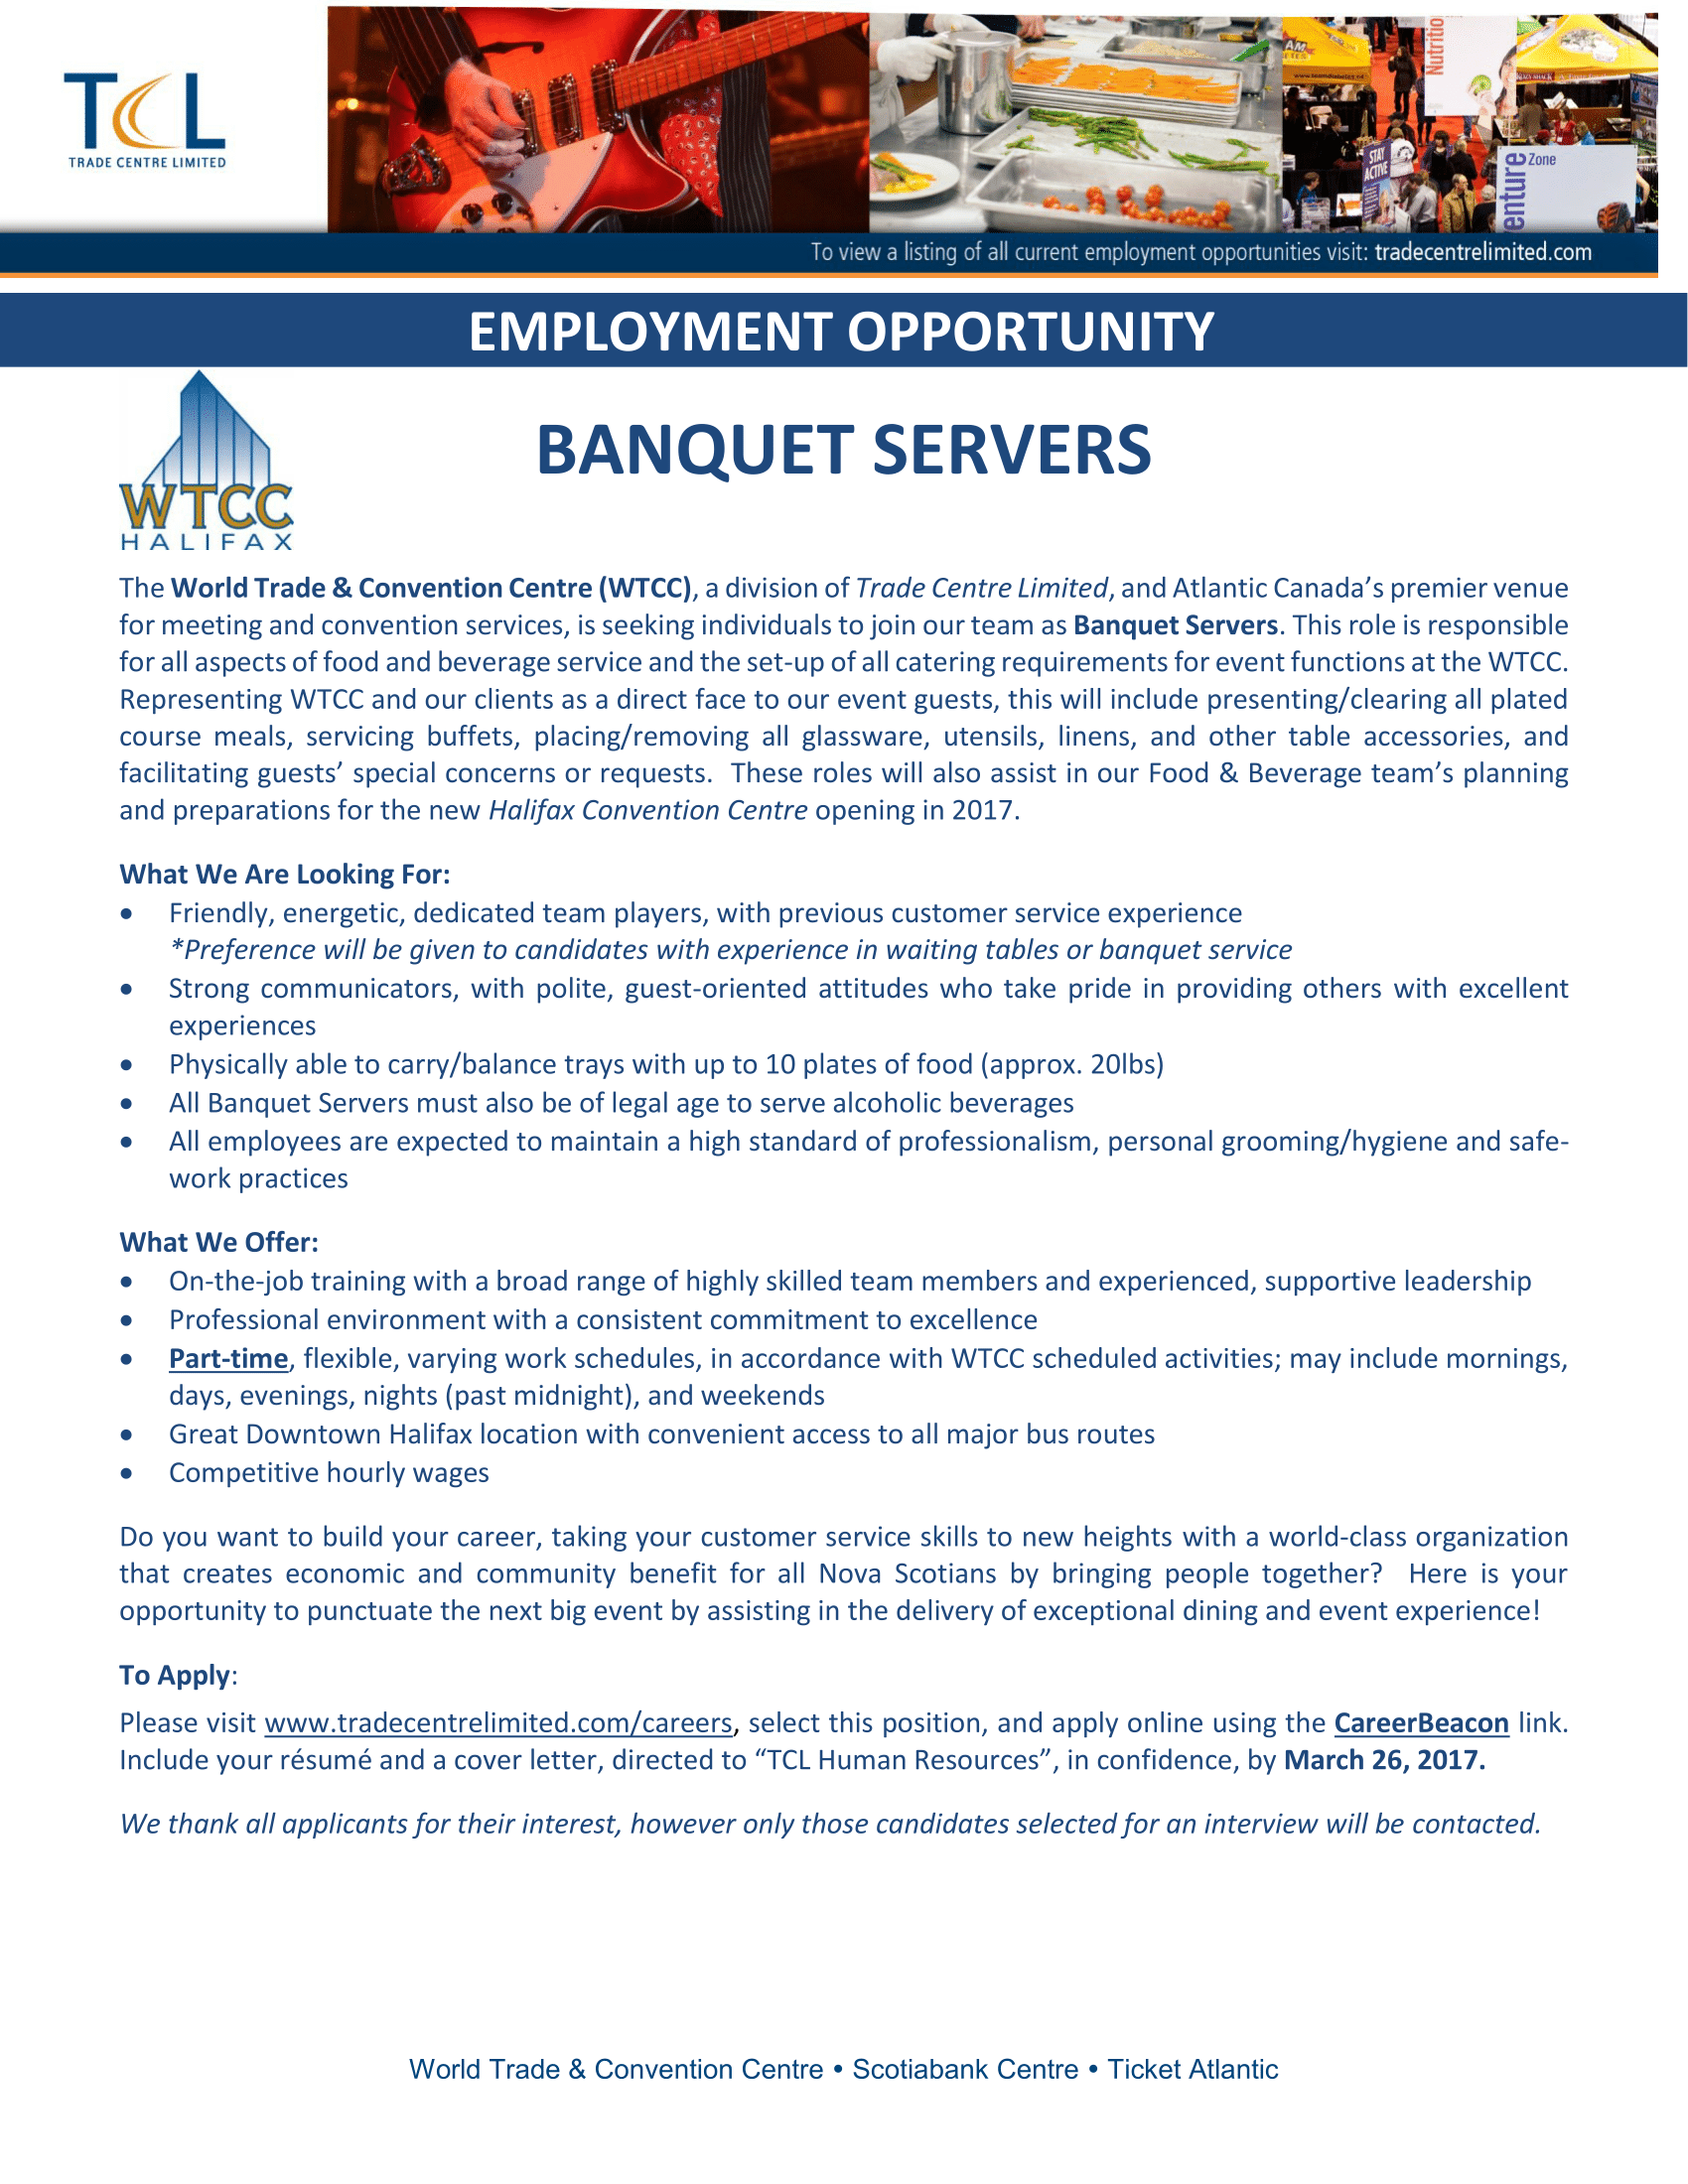 banquet server cover letter 100 banquet server cover letter images collection - Banquet Server Cover Letter